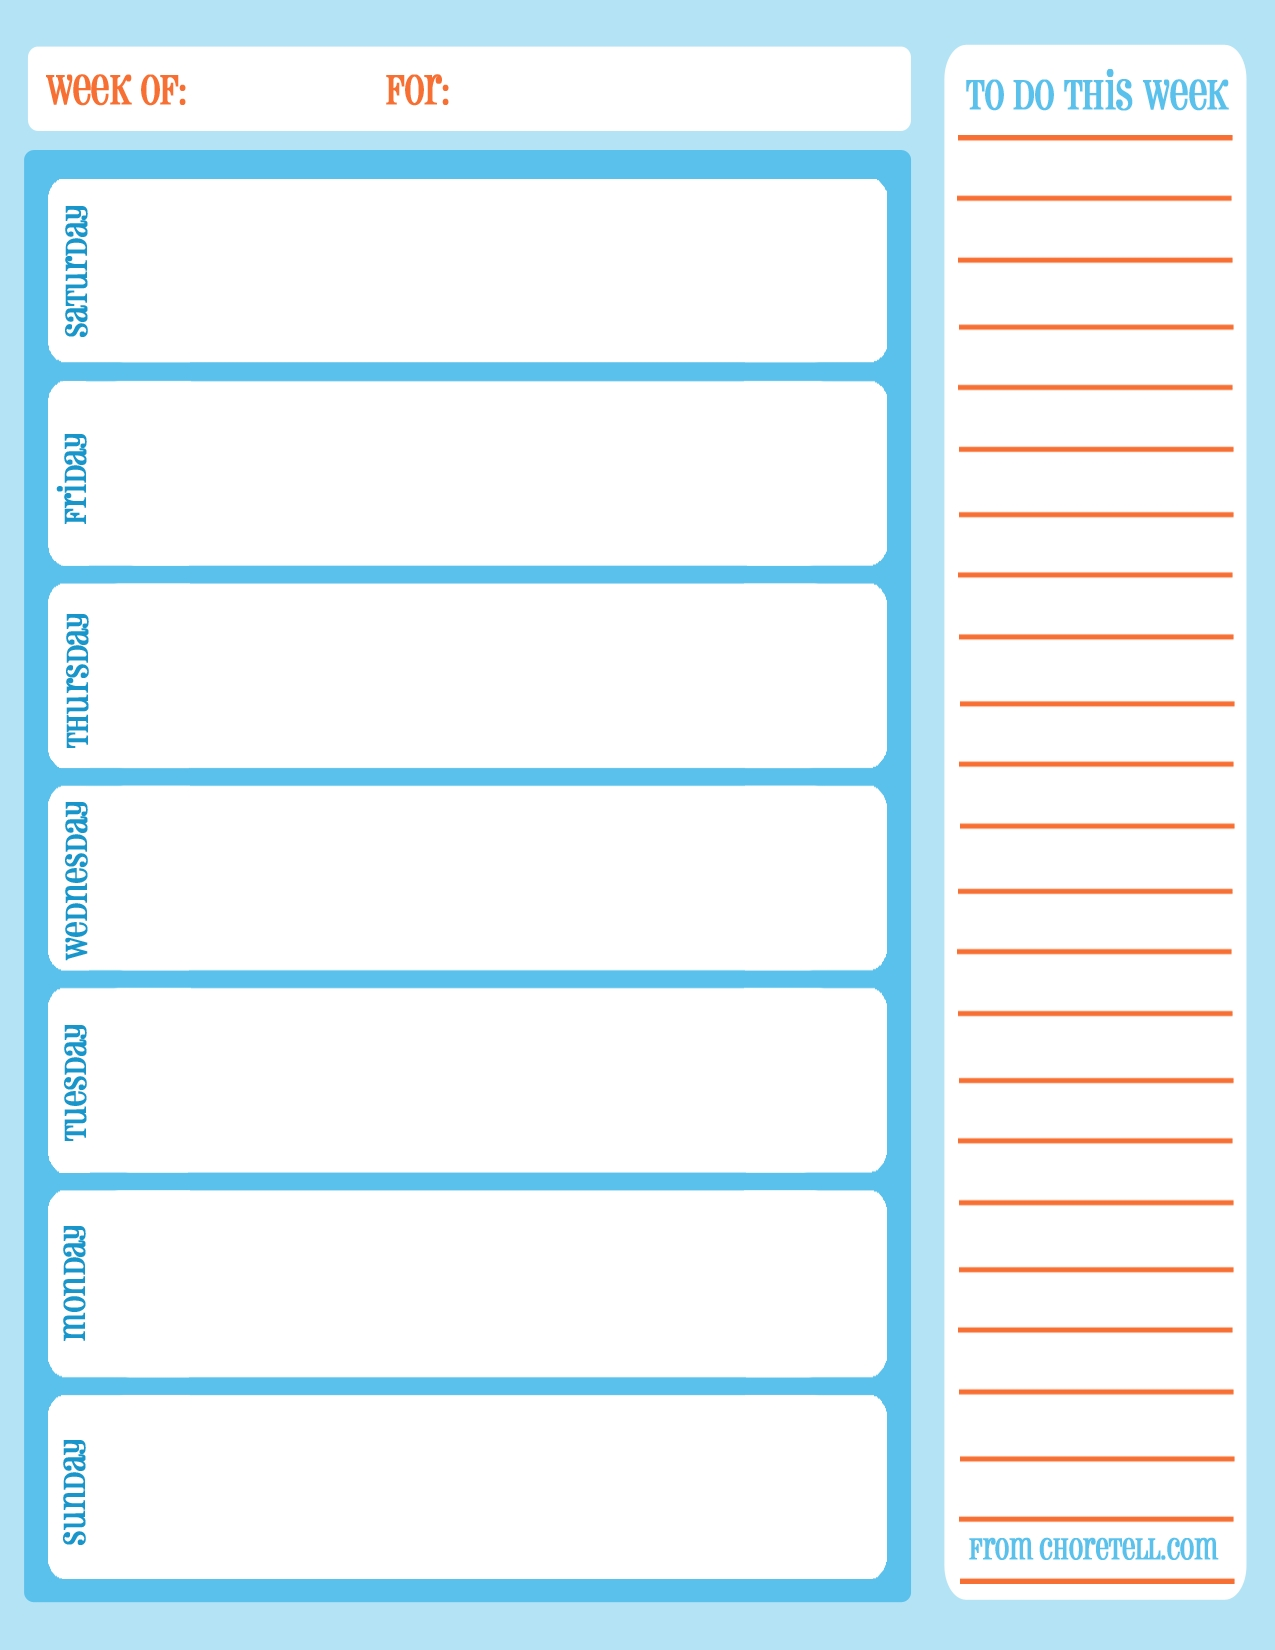 Schedule Template Free Printable Ekly With Times Daily Cleaning with Free Printable Daily To Do Checklist Monday Through Friday